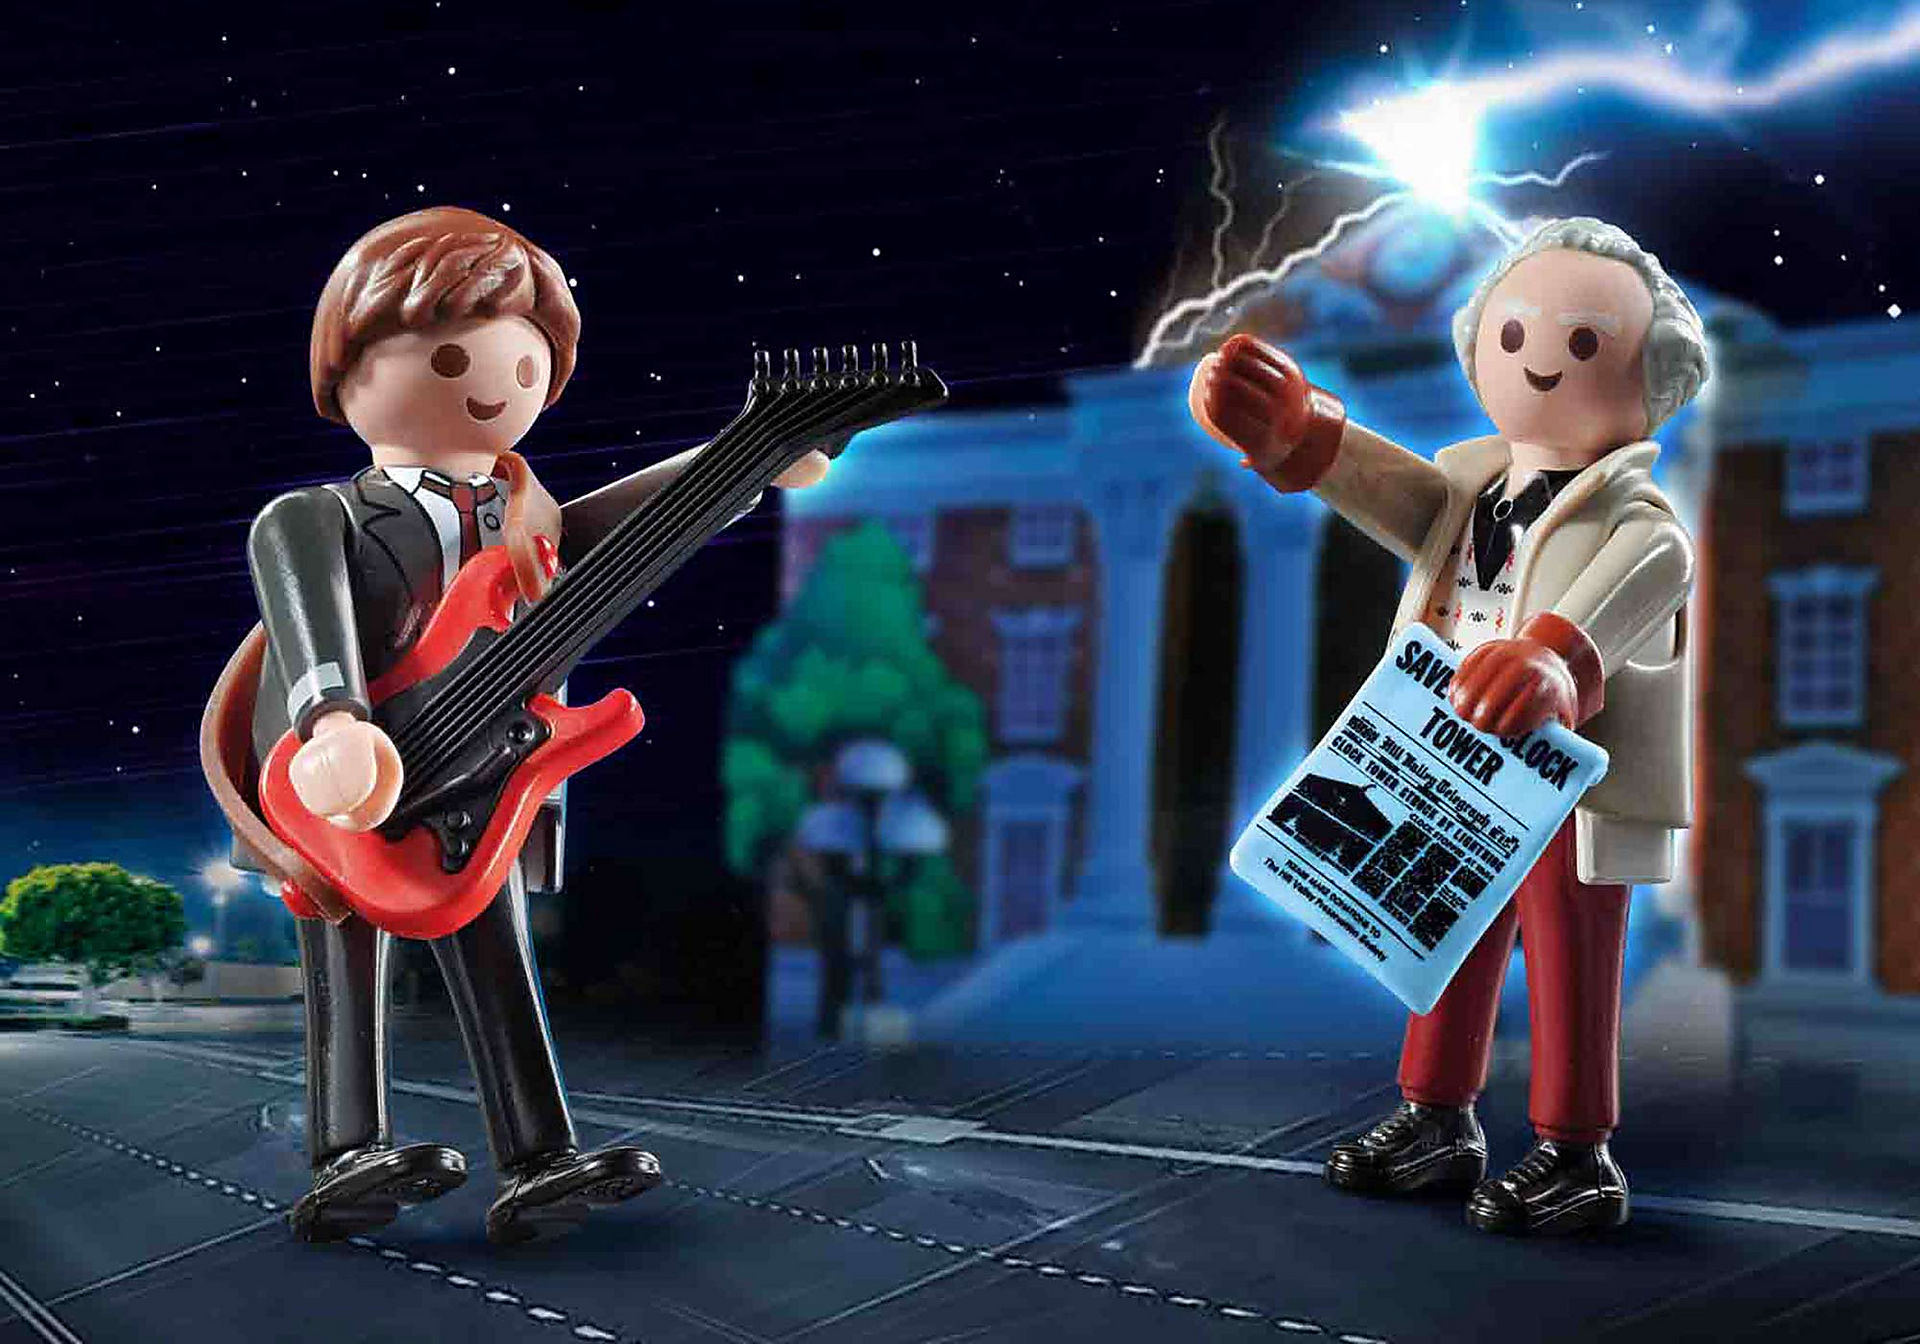 70459 Back to the Future Marty Mcfly and Dr. Emmet Brown zoom image1